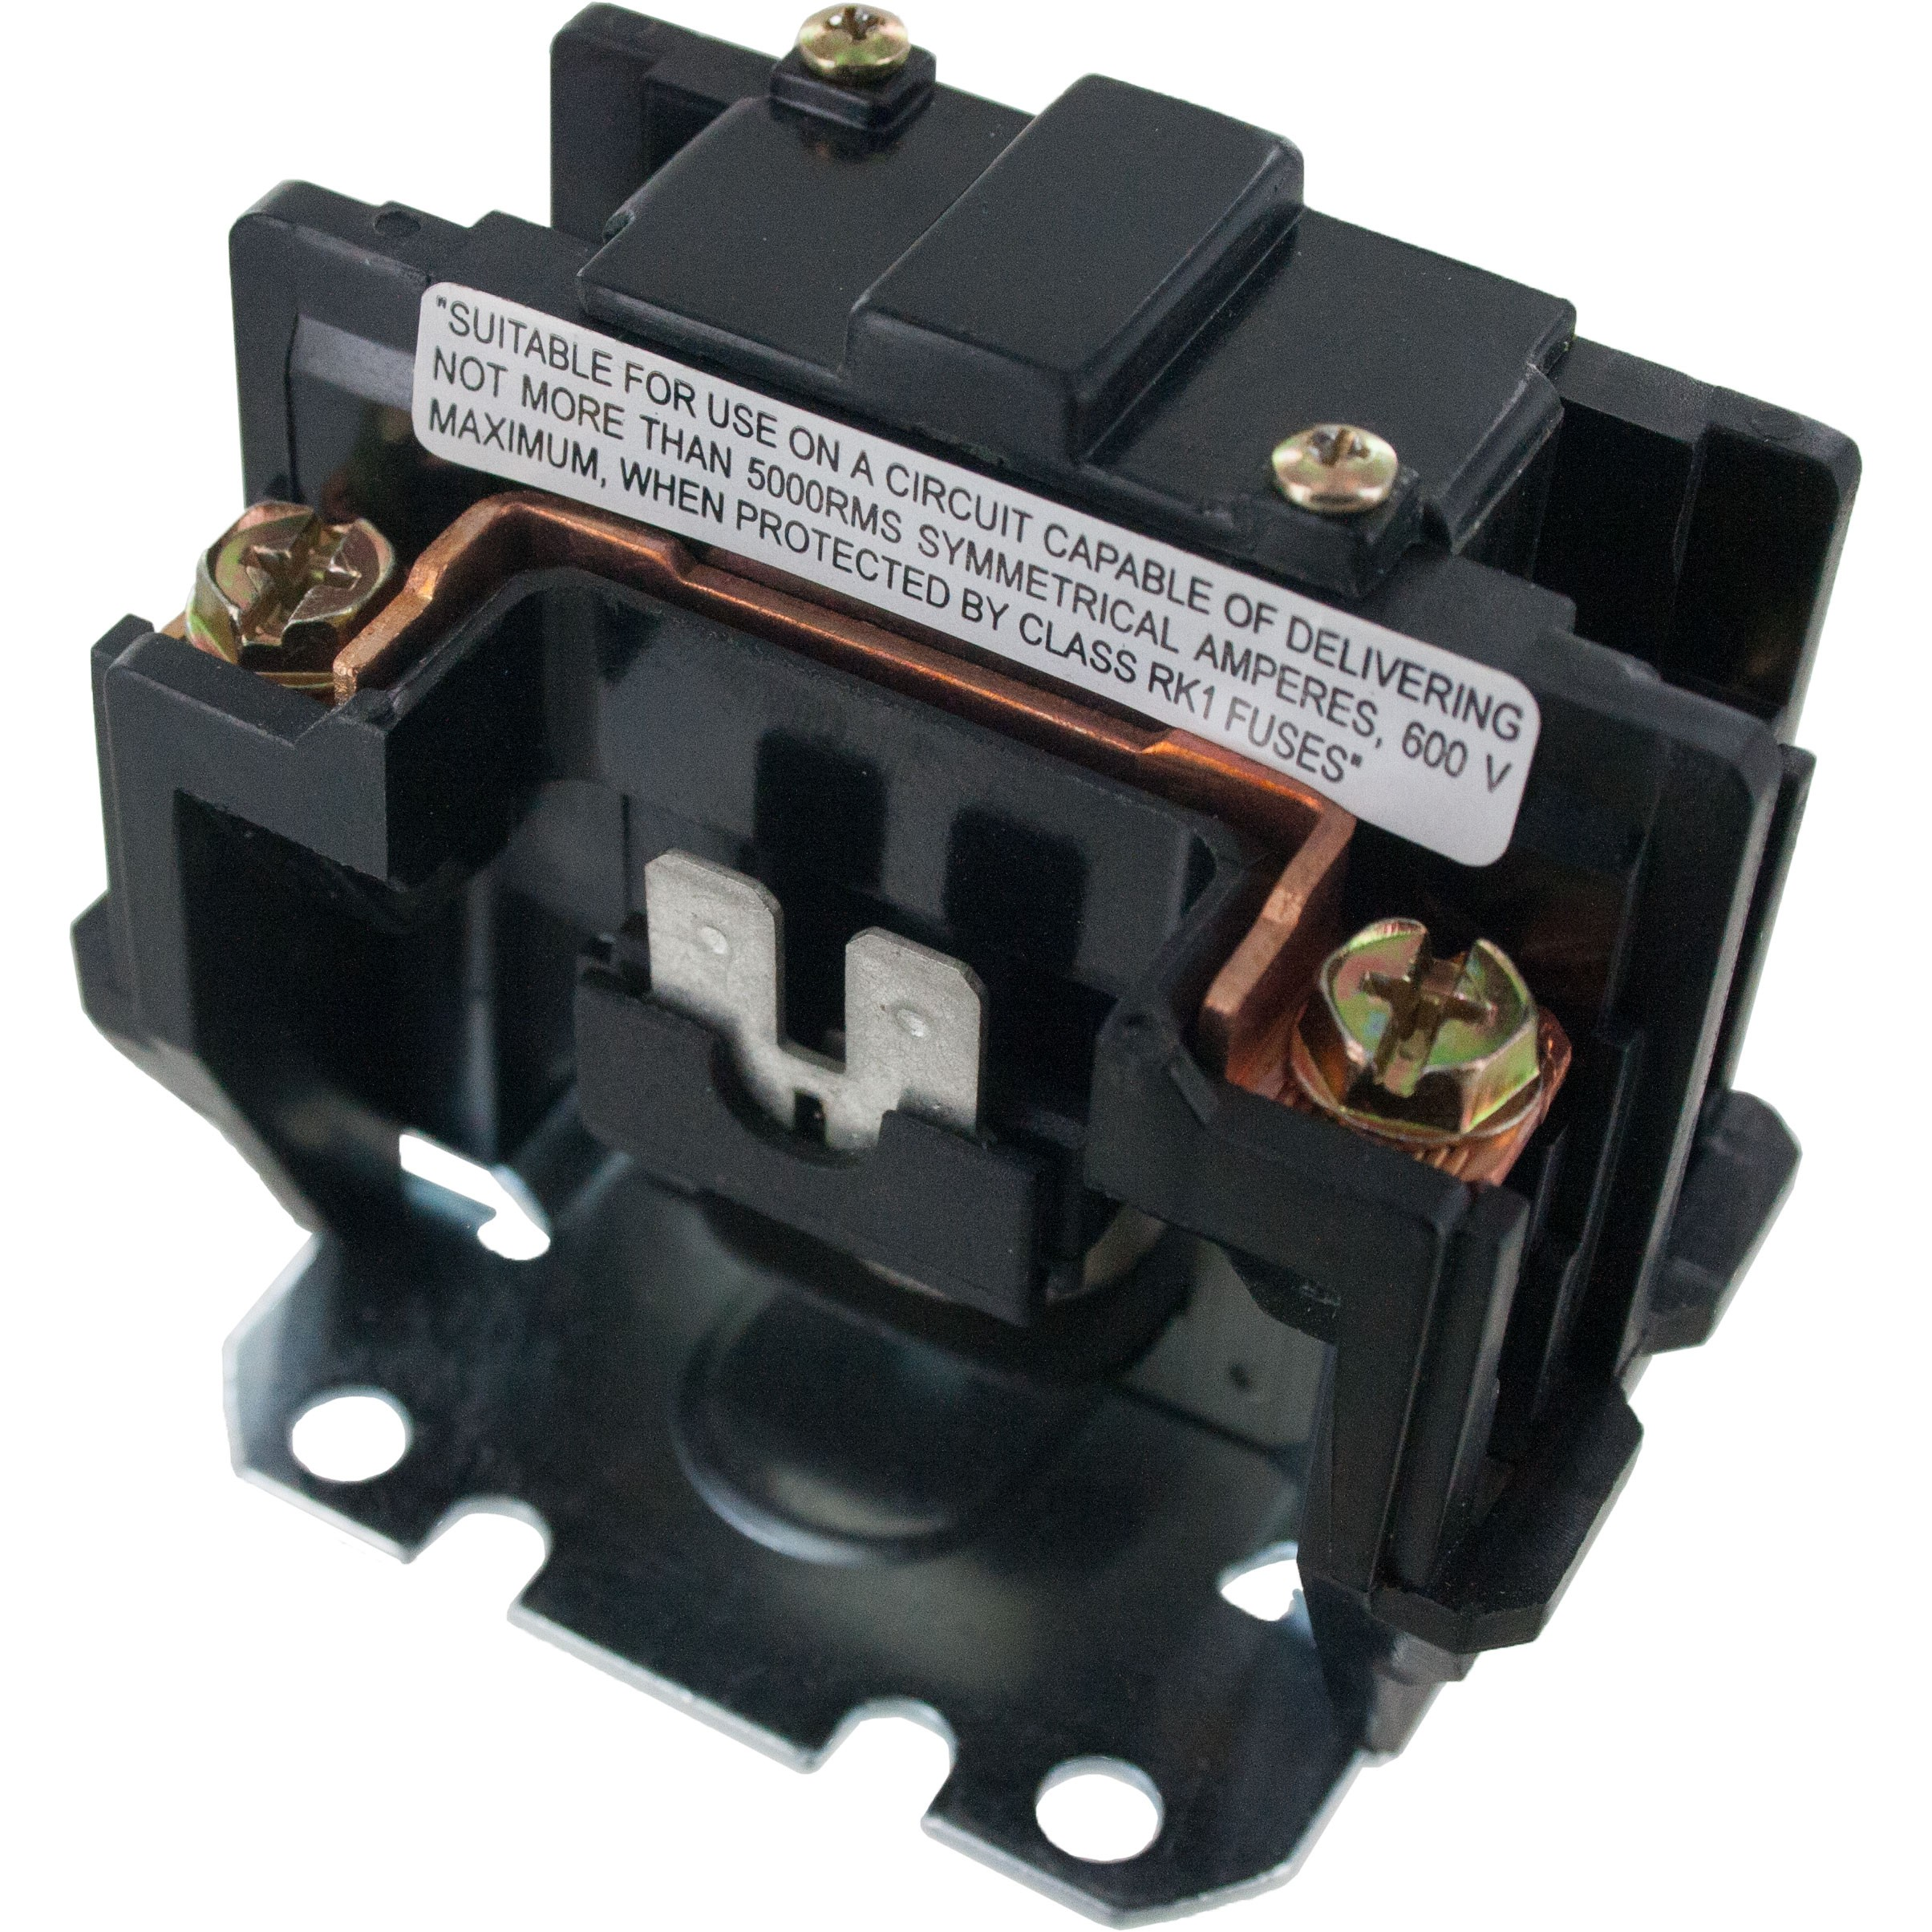 1 Pole Contactor 40 Amp 120VAC Coil With Shunt